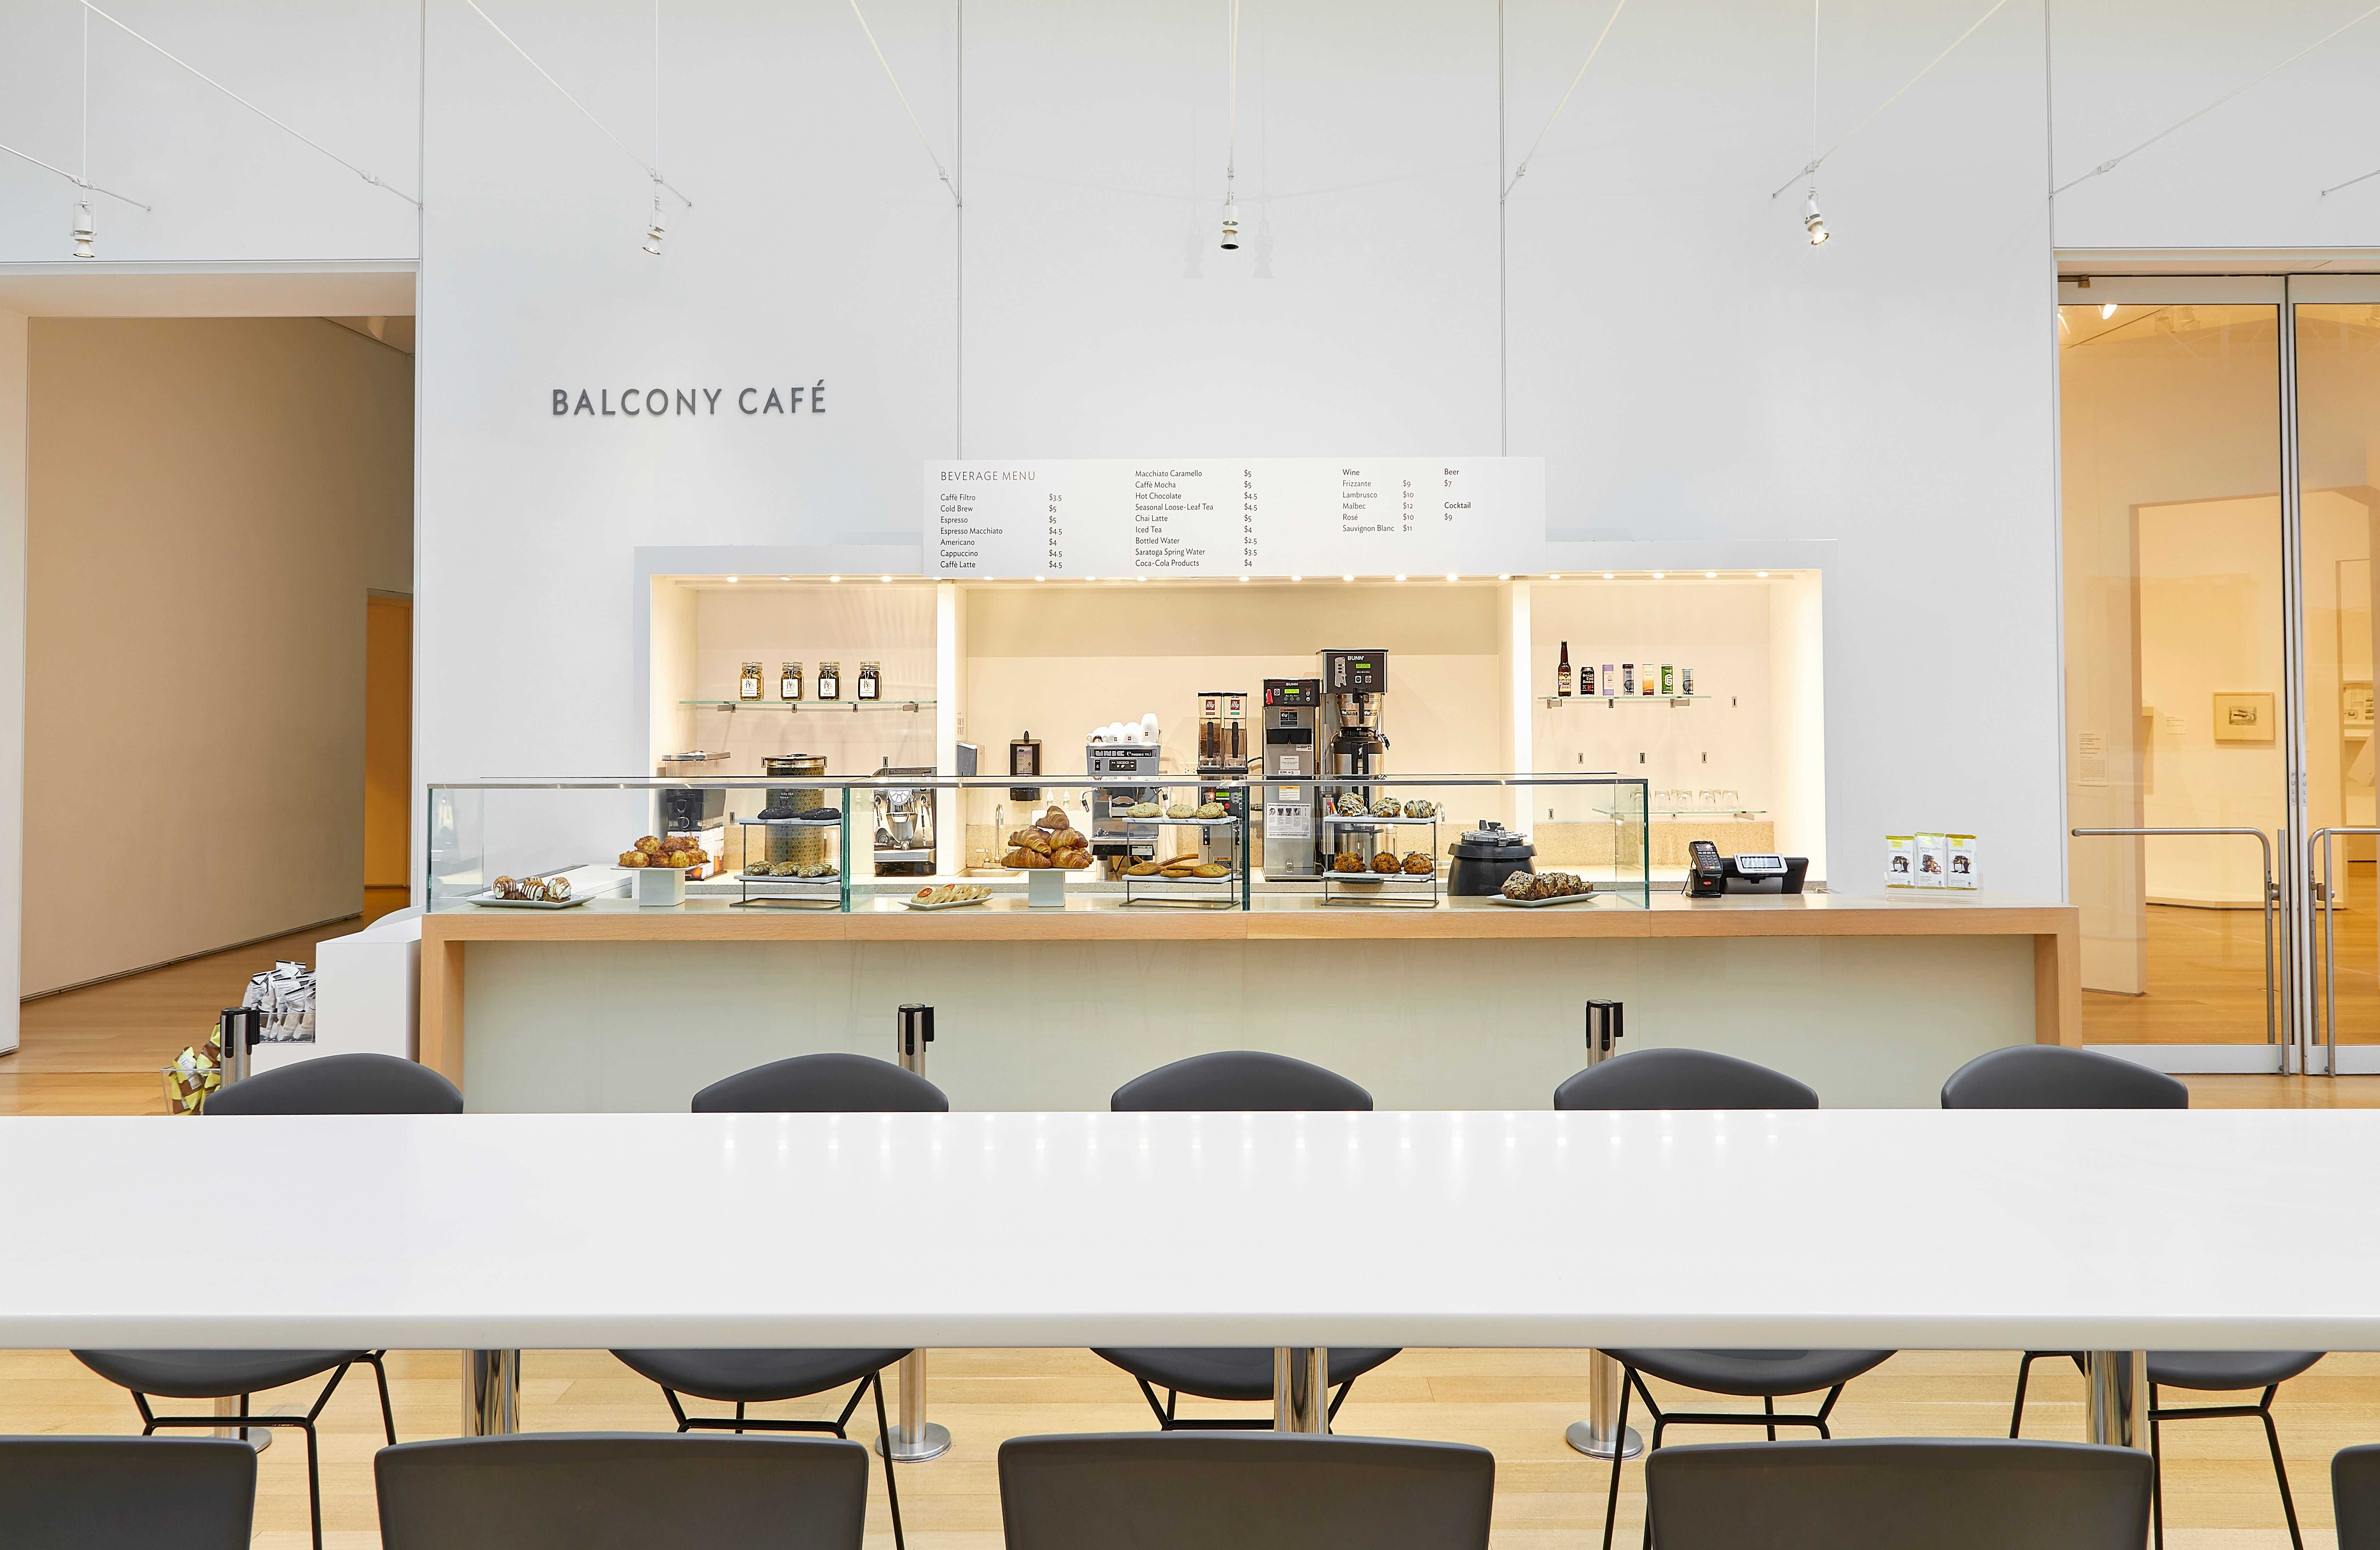 A photography of the museum's Balcony Cafe.